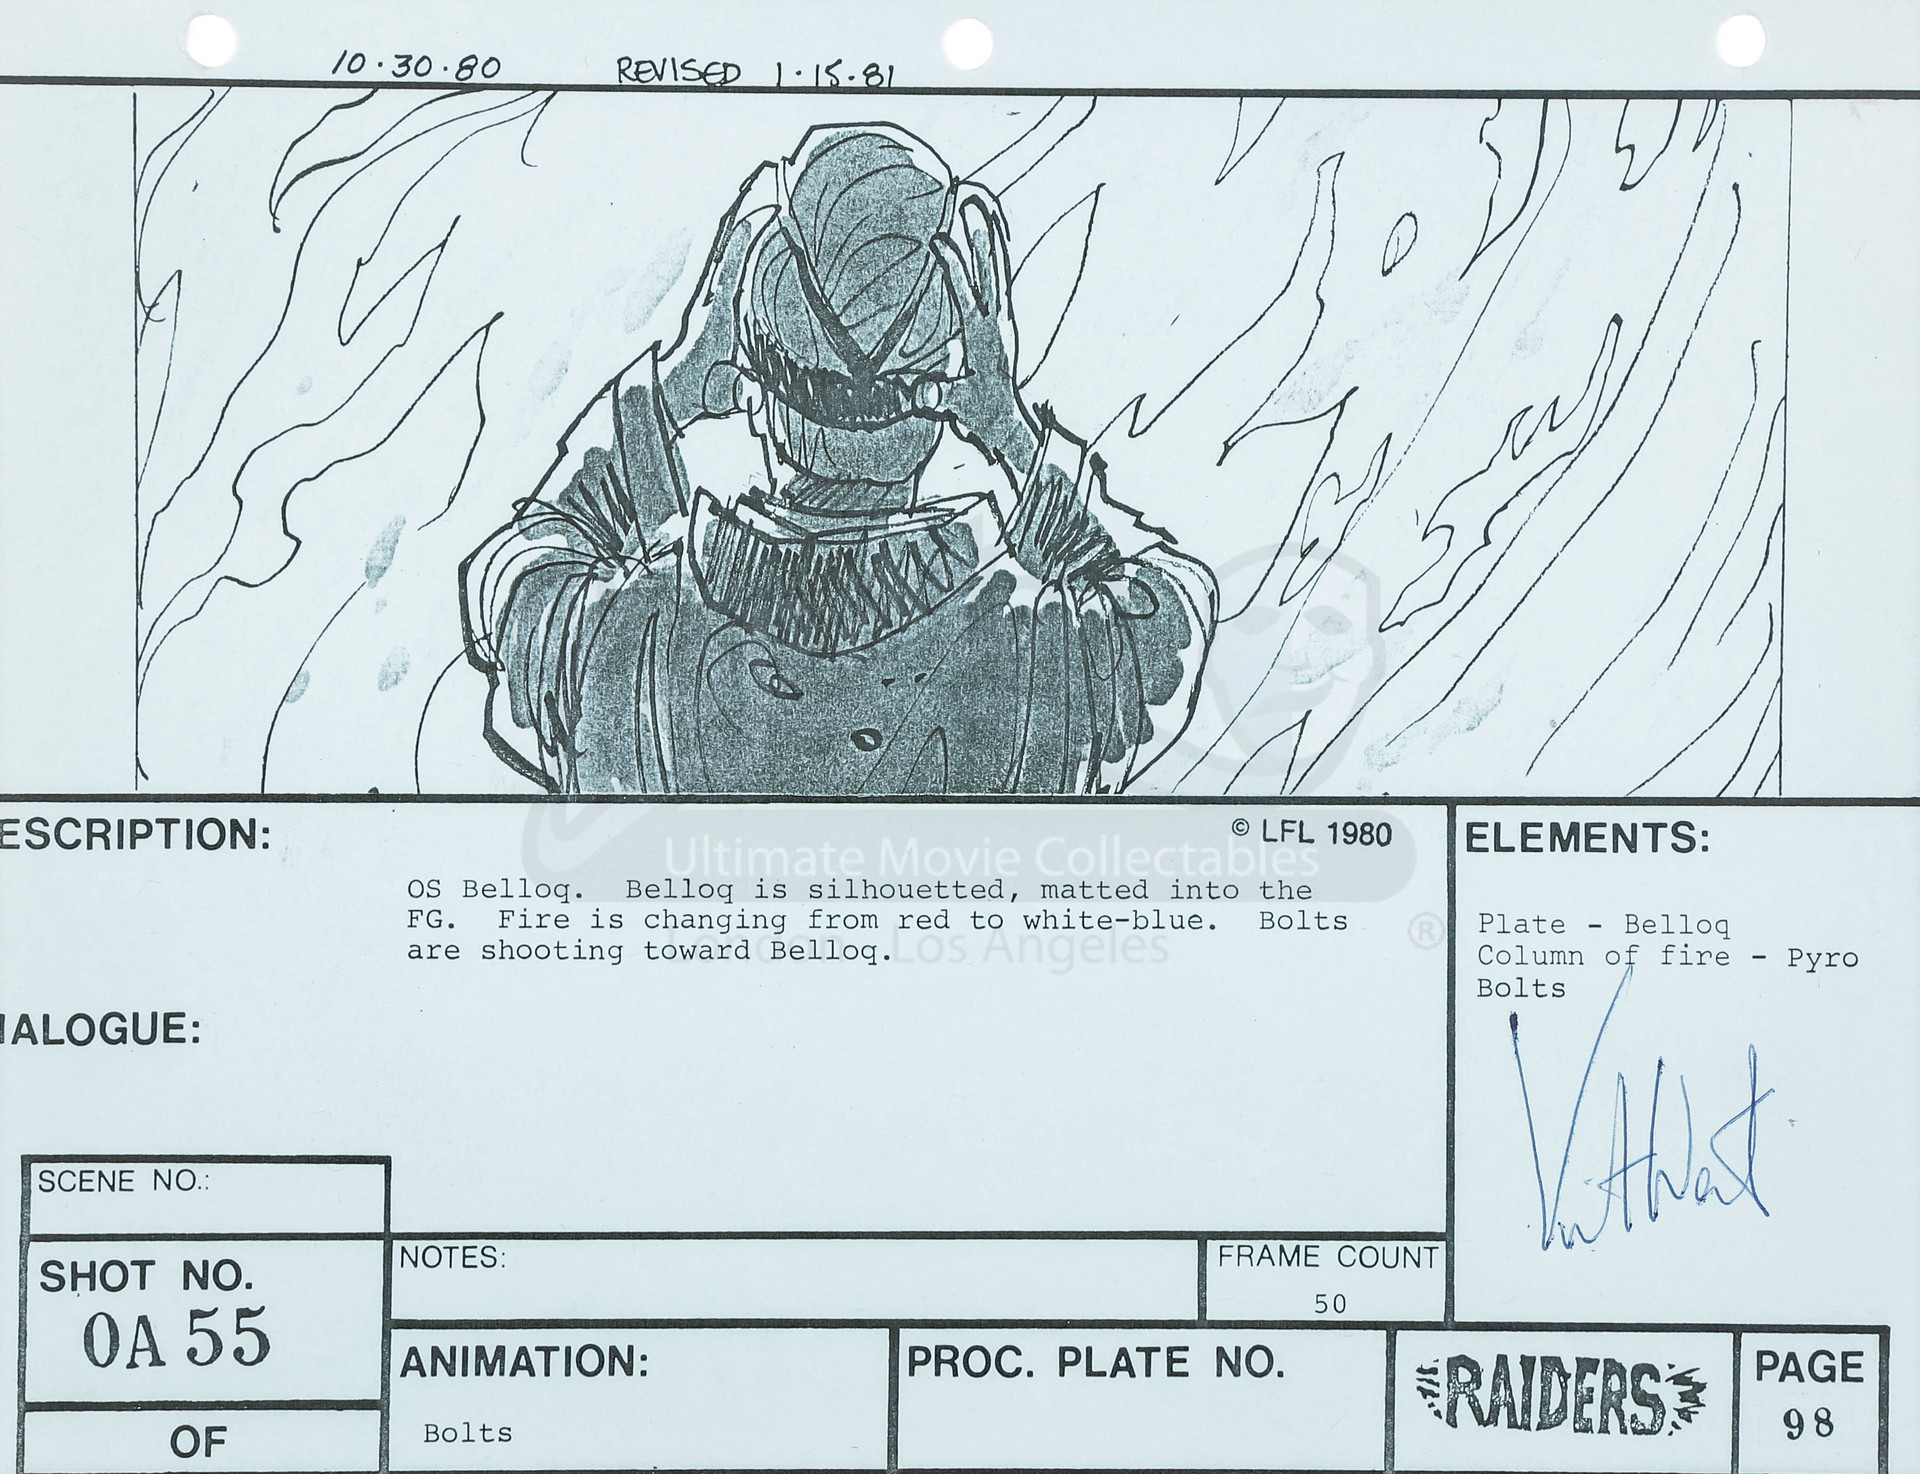 Kit West Signed Storyboard Belloq In The Flames Prop Store Note This Is A Thumbnail Diagram Click On It To Enlarge Image All Images And Screen Shots That Appear Throughout Our Site Are Copyright Their Respective Owners Presented